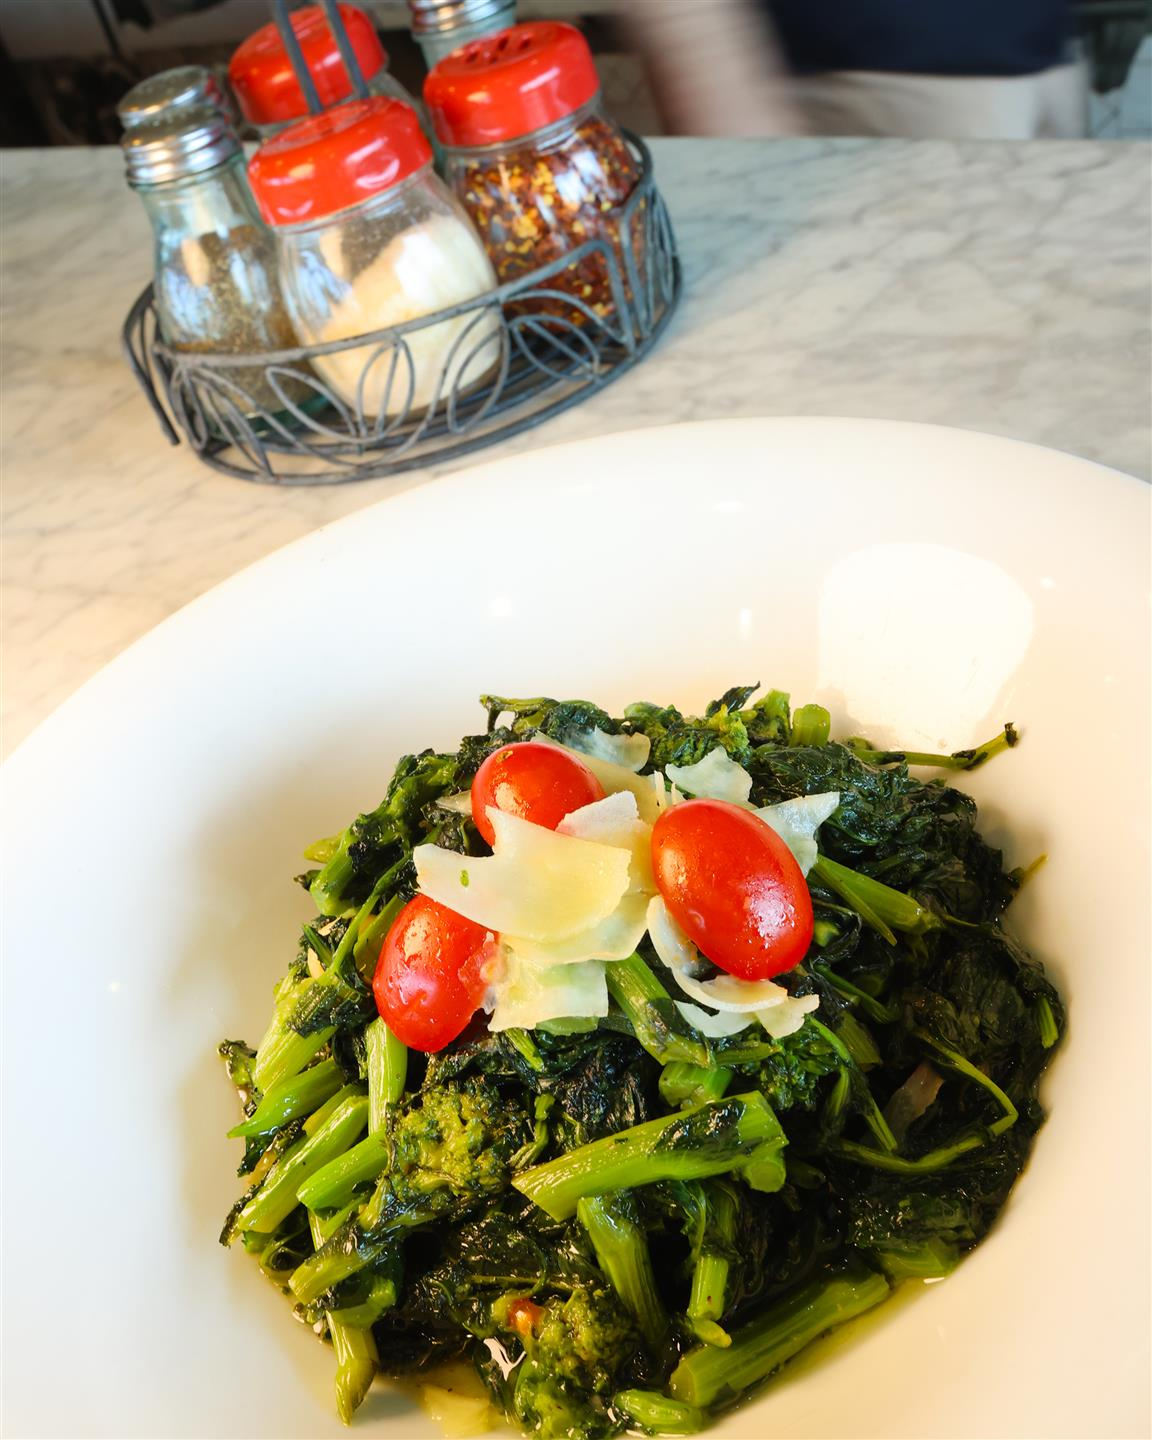 broccoli rabe topped with cheese and tomatoes